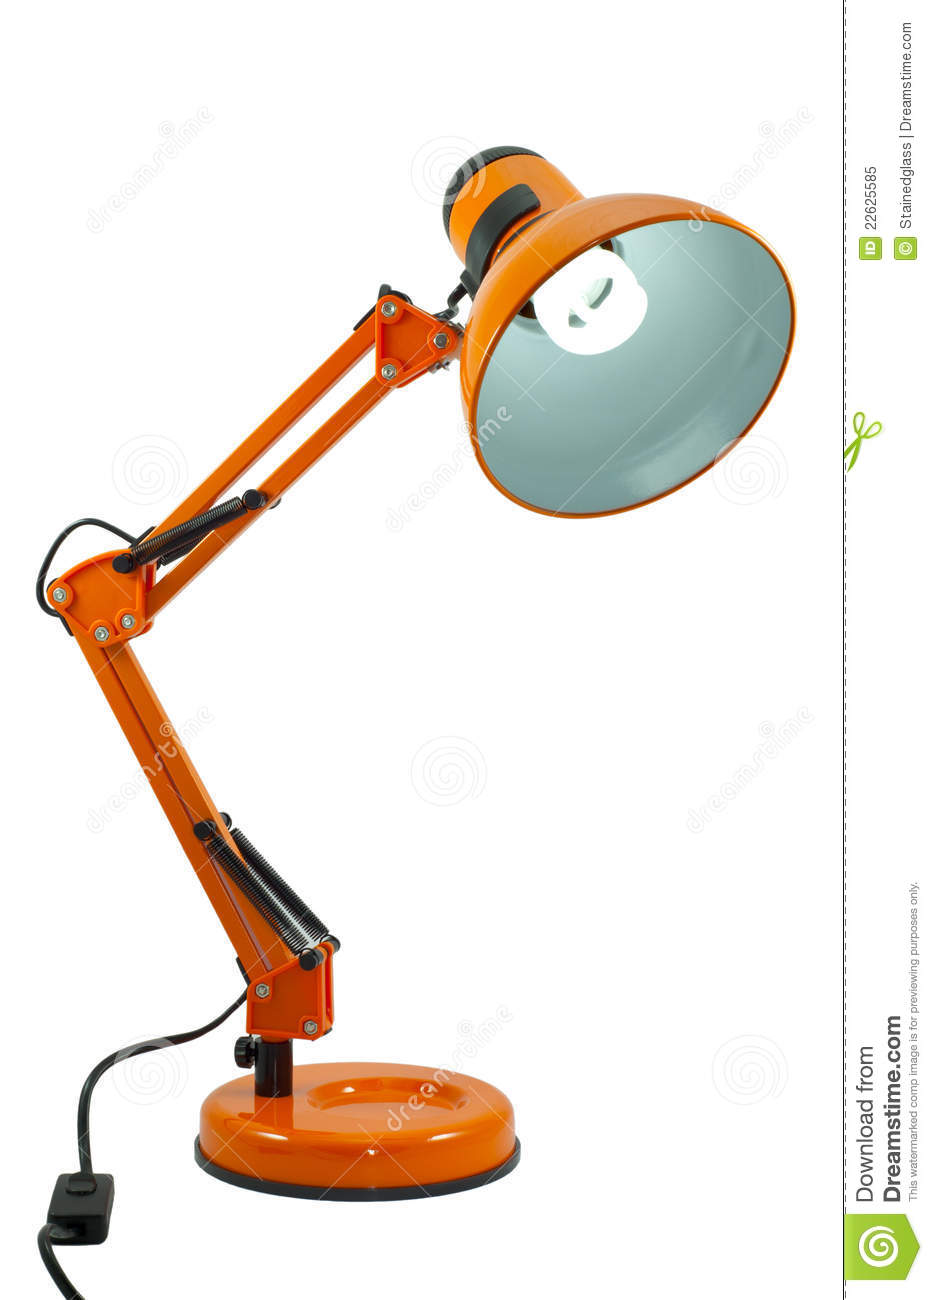 Cordon Lumineux Lampe Orange De Pixar Illustration Stock. Illustration Du